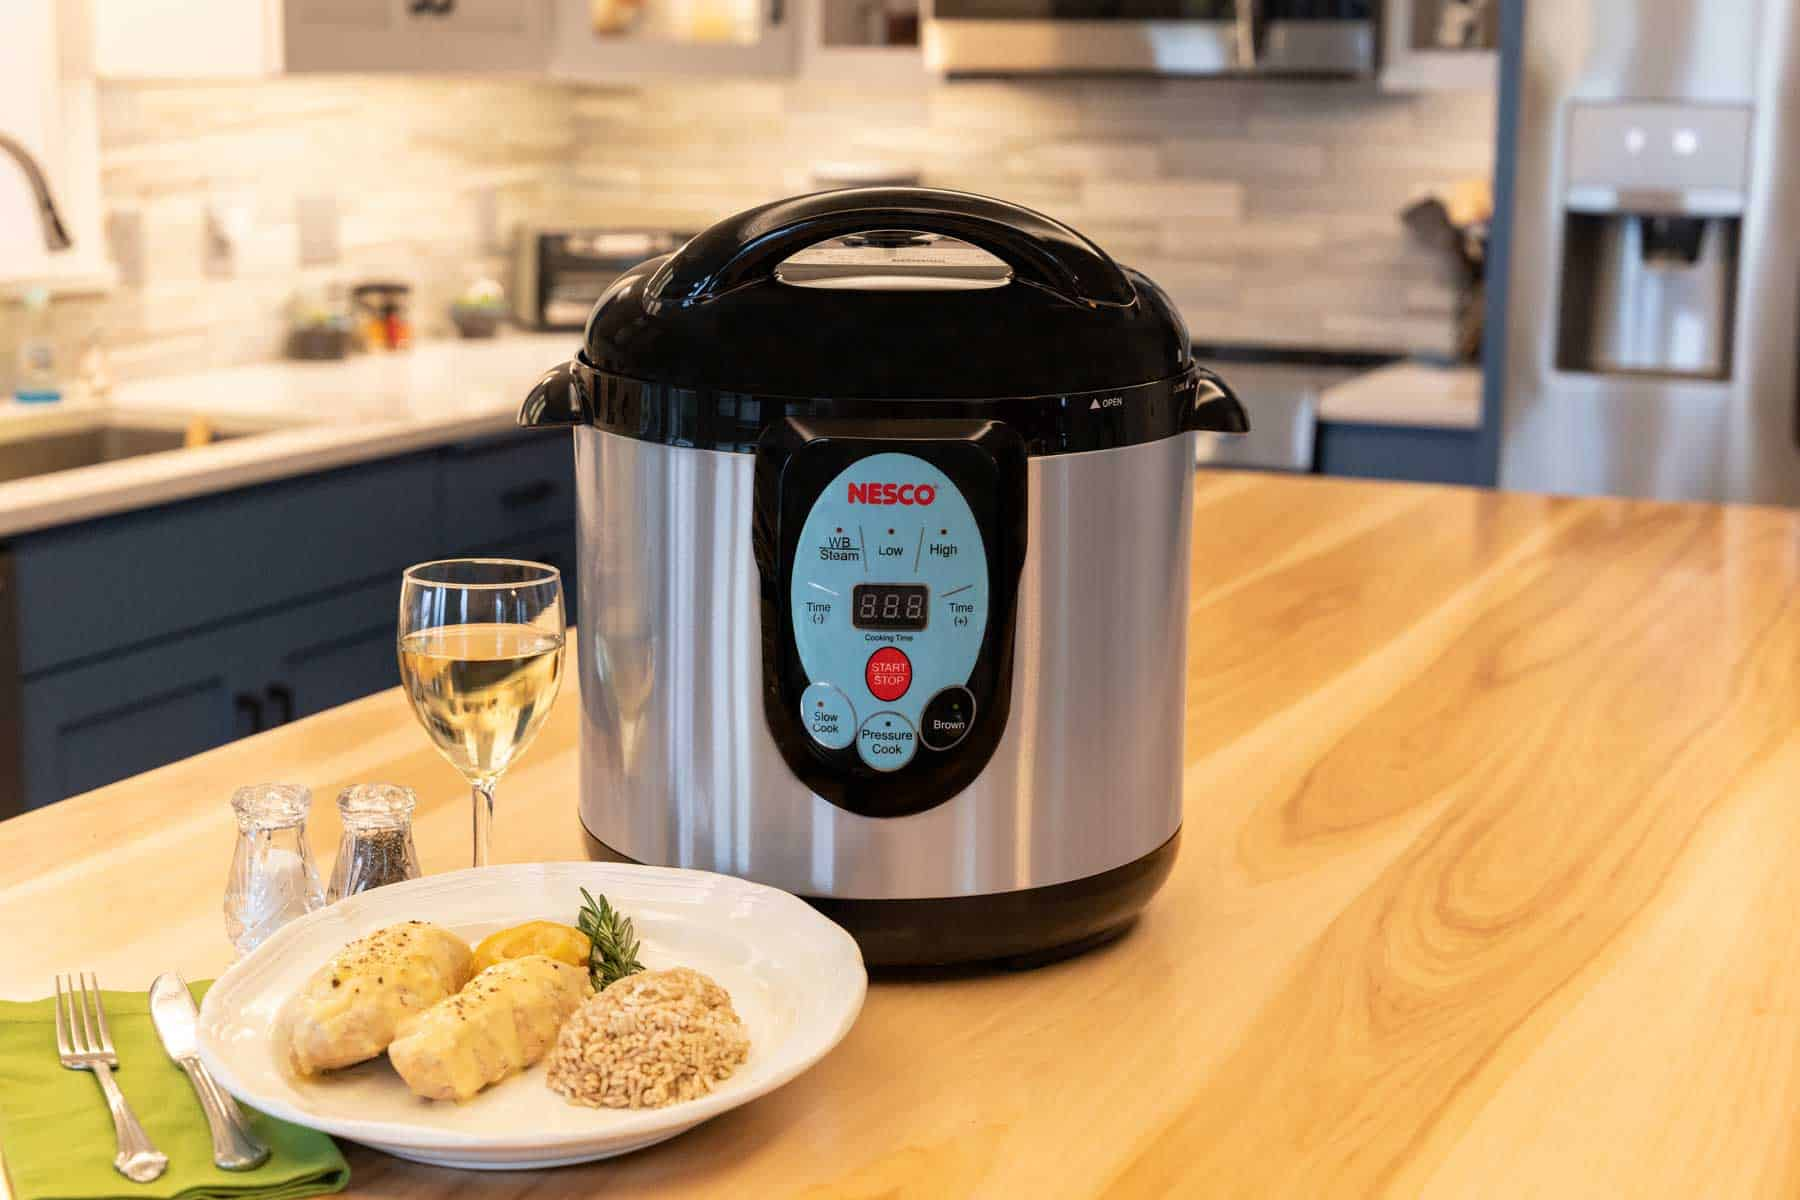 Read more about the article All-In-One Versatility Makes NESCO Smart Canner & Cooker the Ultimate Kitchen Appliance